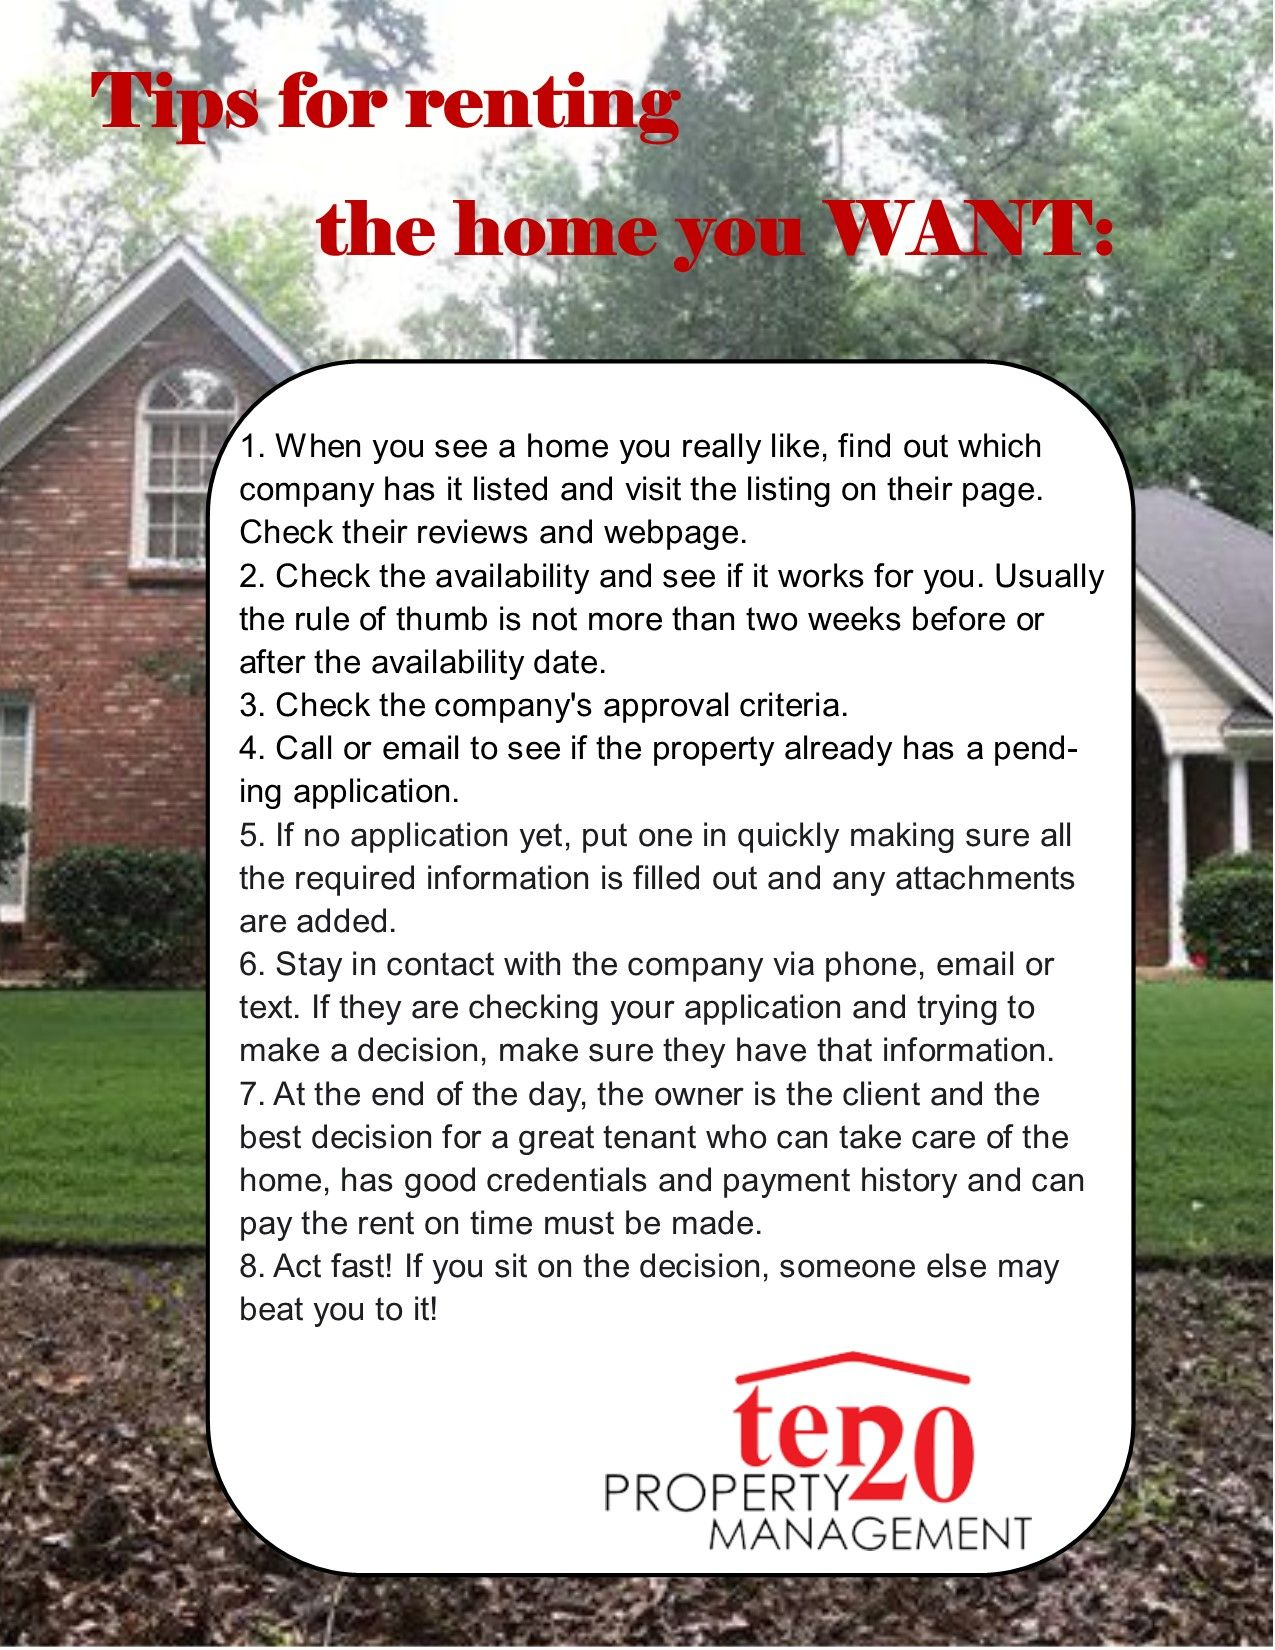 Tips for renting the home you want property management